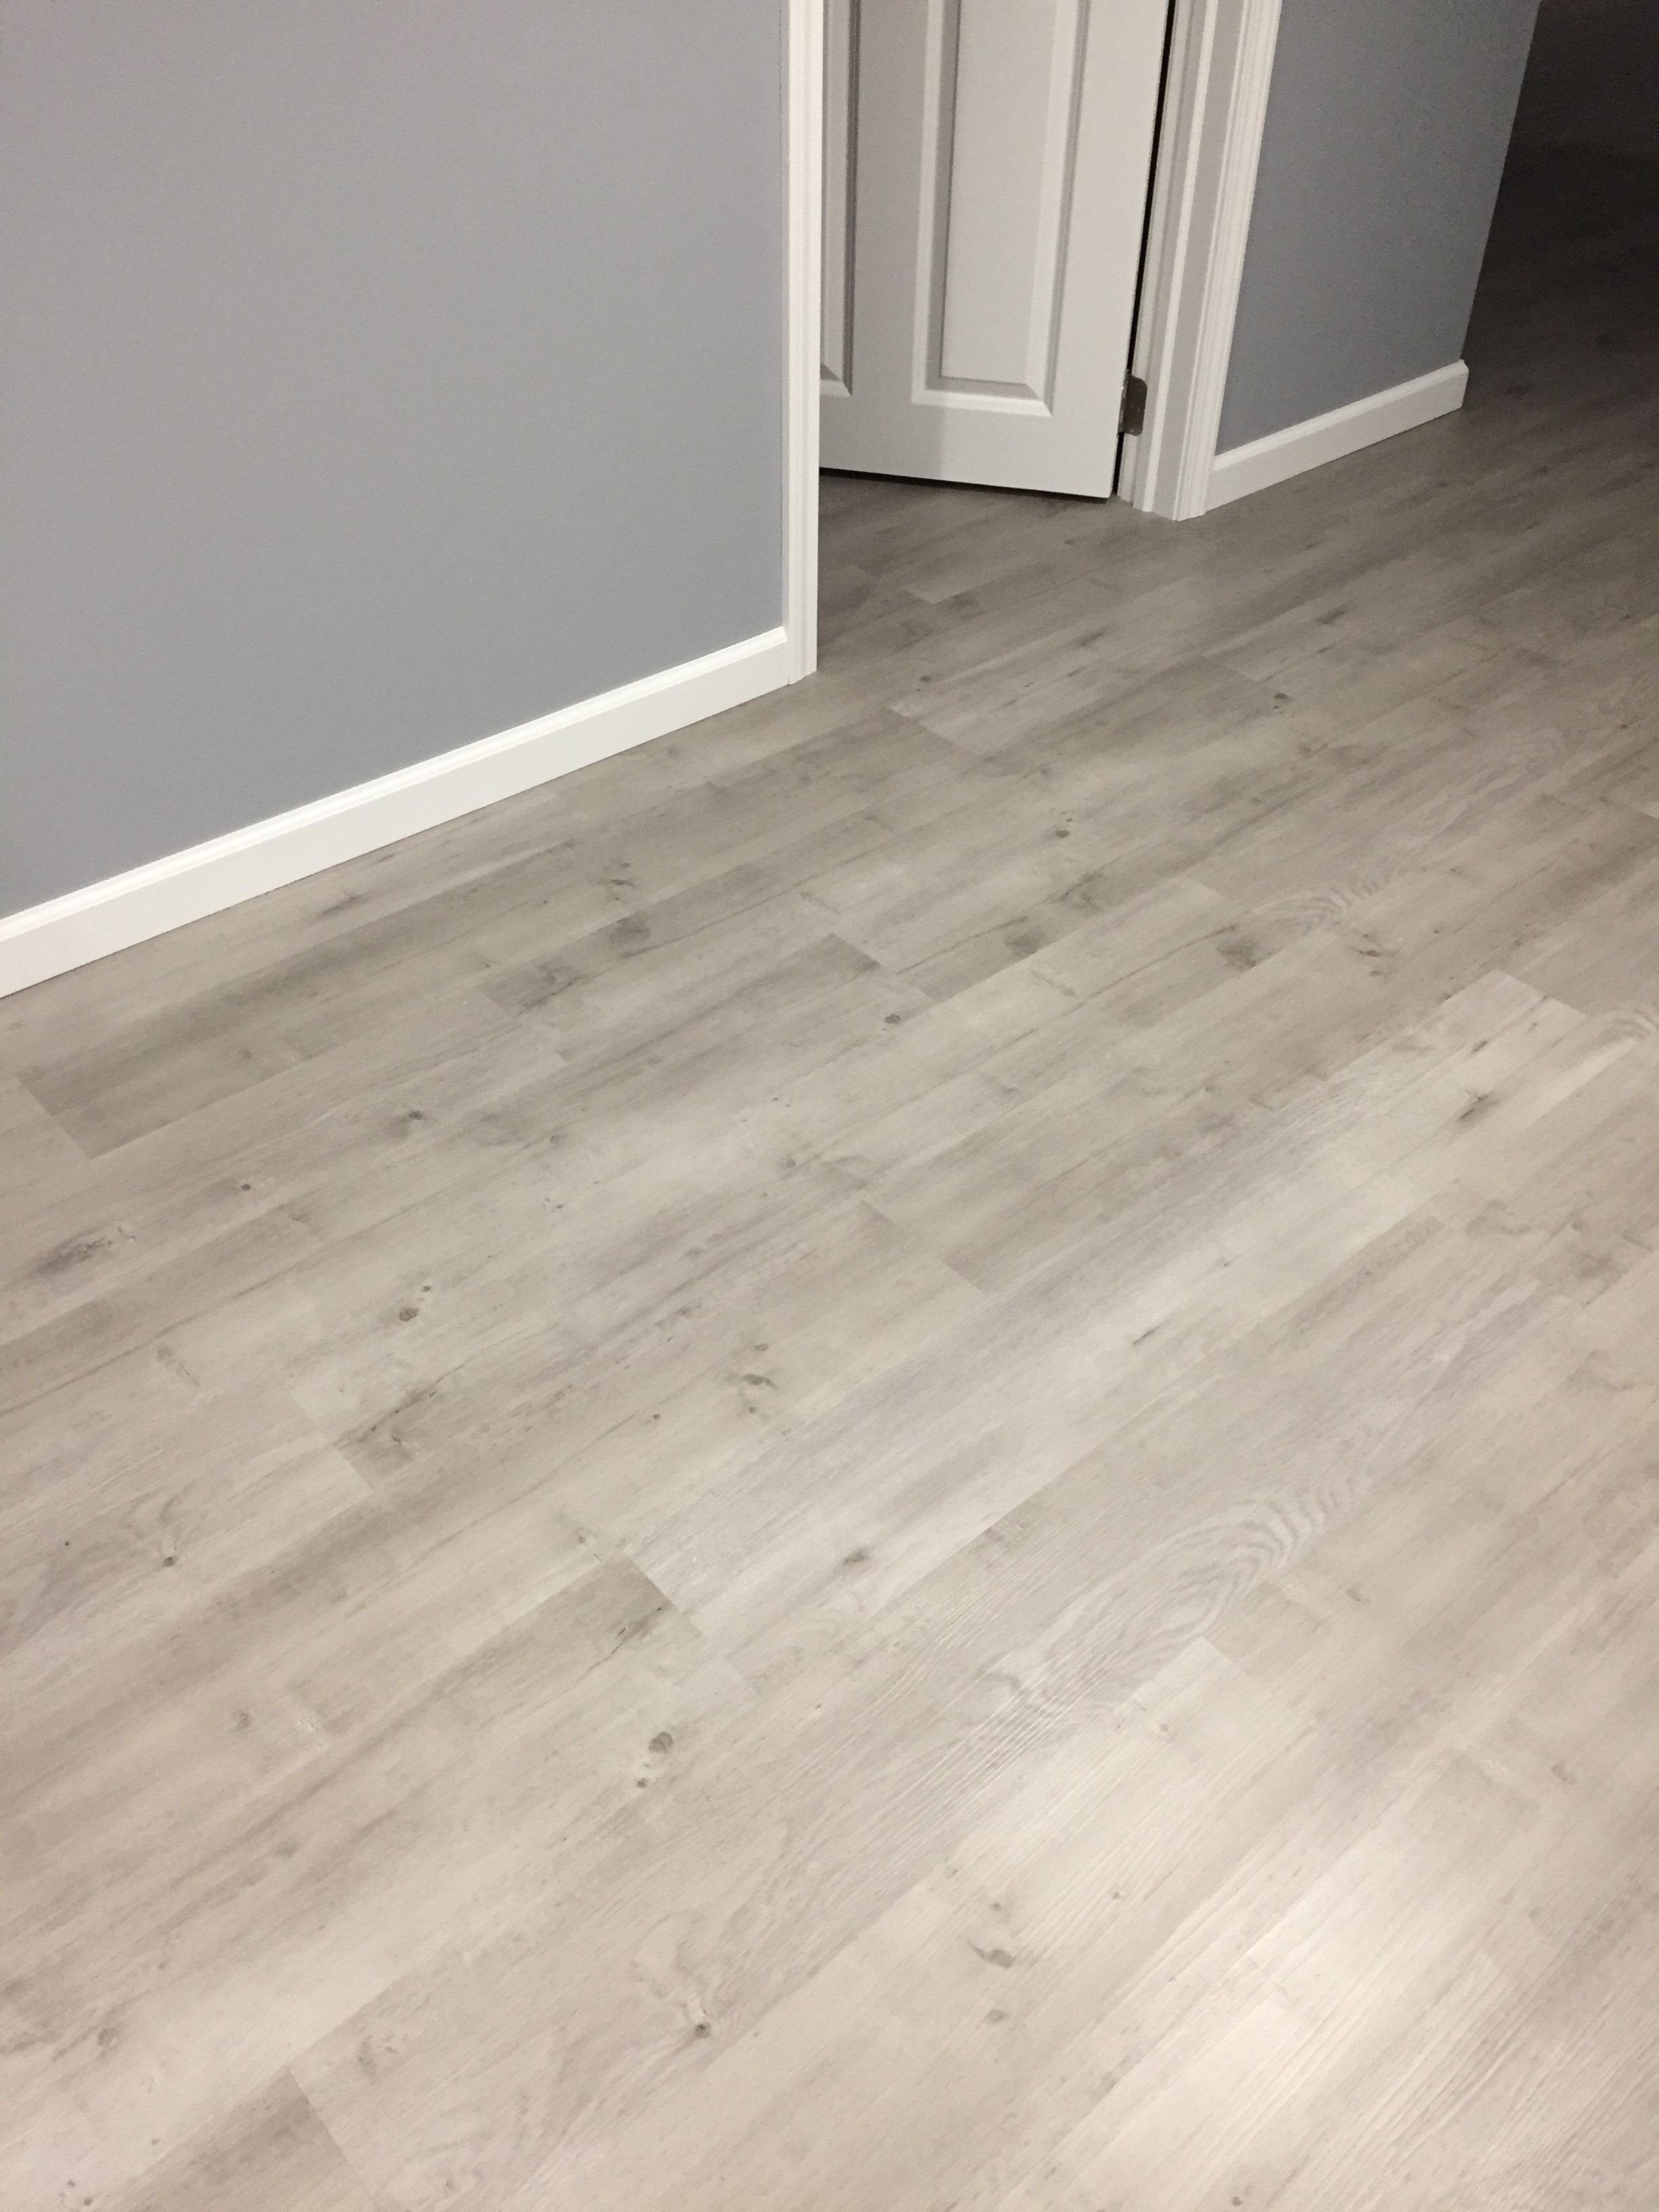 Vesdura C Lock Vinyl Plank Flooring Reviews - Carpet ...